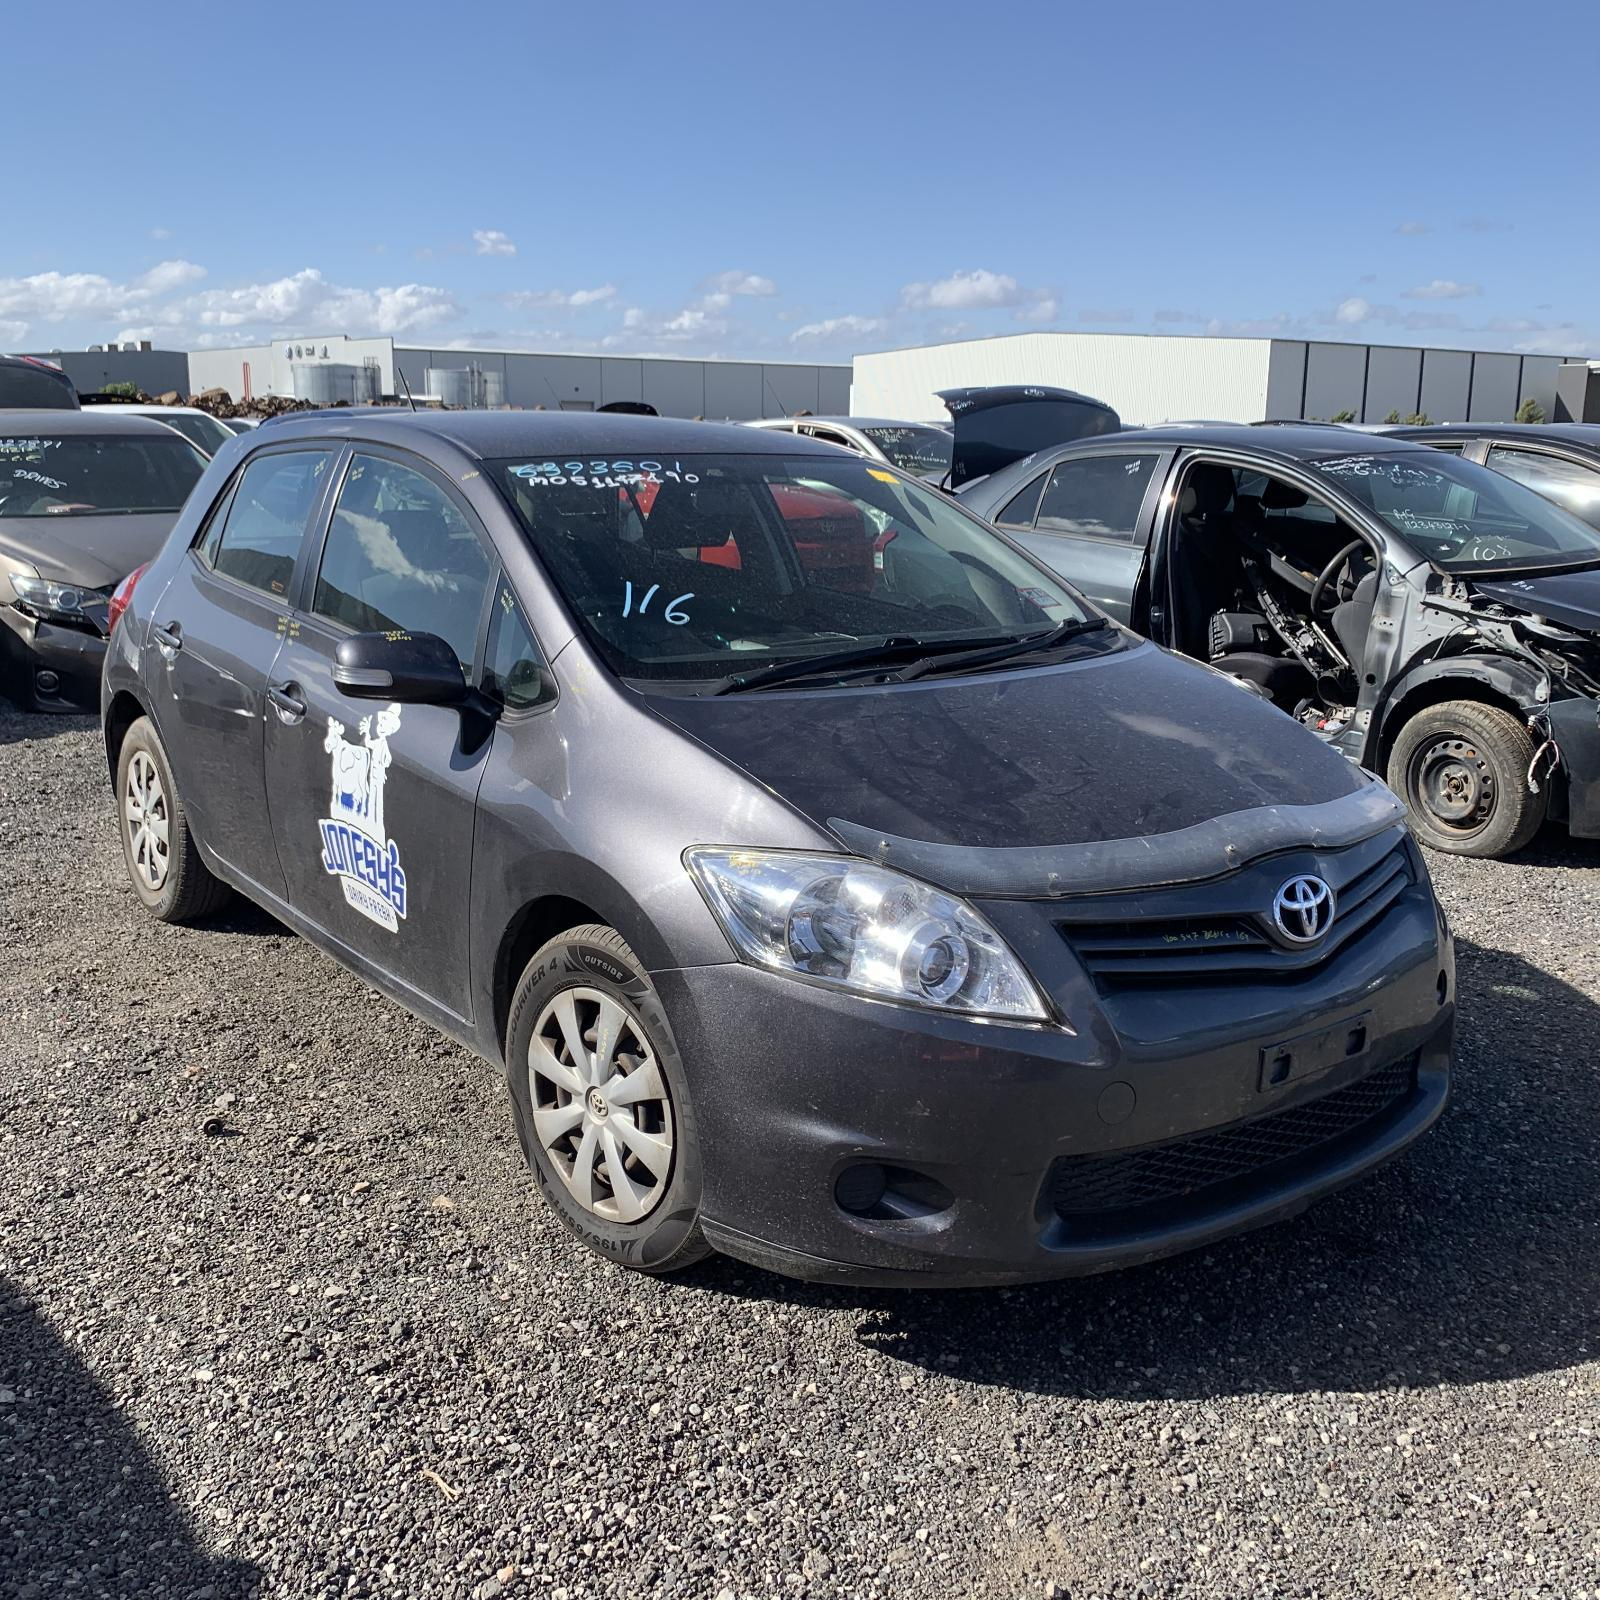 Toyota COROLLA ASCENT ZRE152 1.8L ENGINE AUTOMATIC FWD TRANSMISSION 03/07 - 09/12